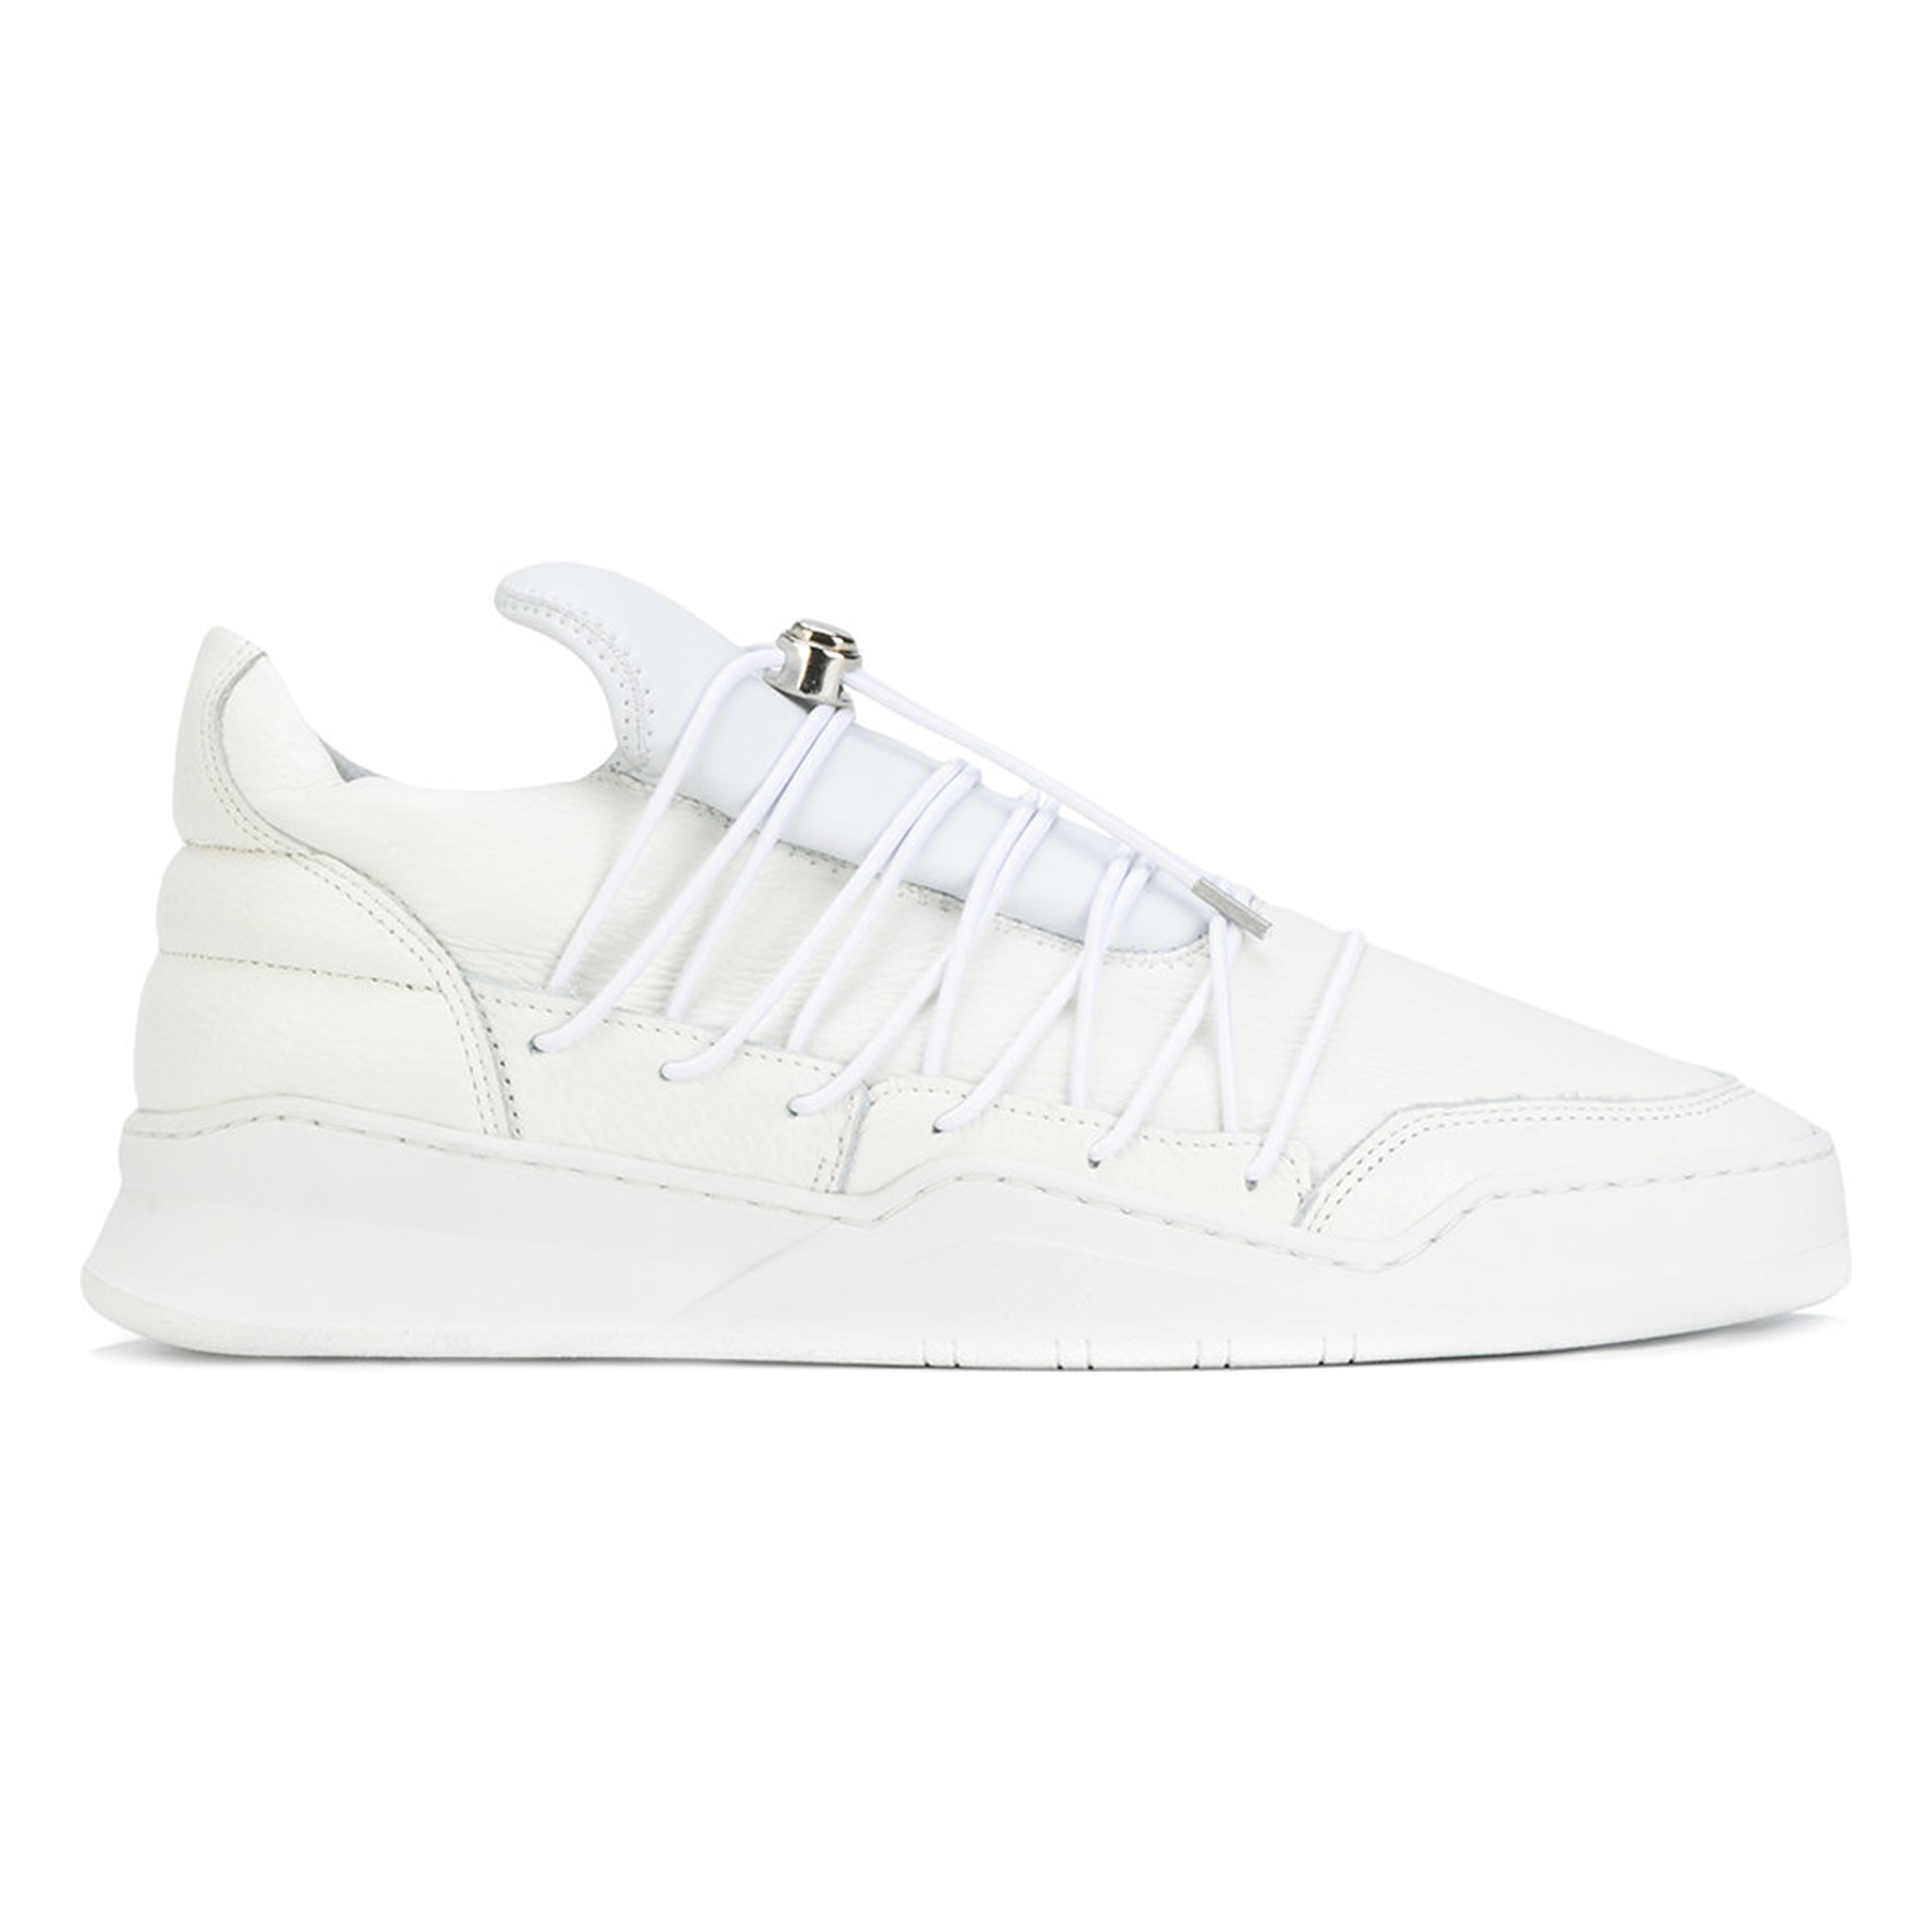 [VIPSALE] Filling Pieces/ Lee レザースニーカー☆ホワイト